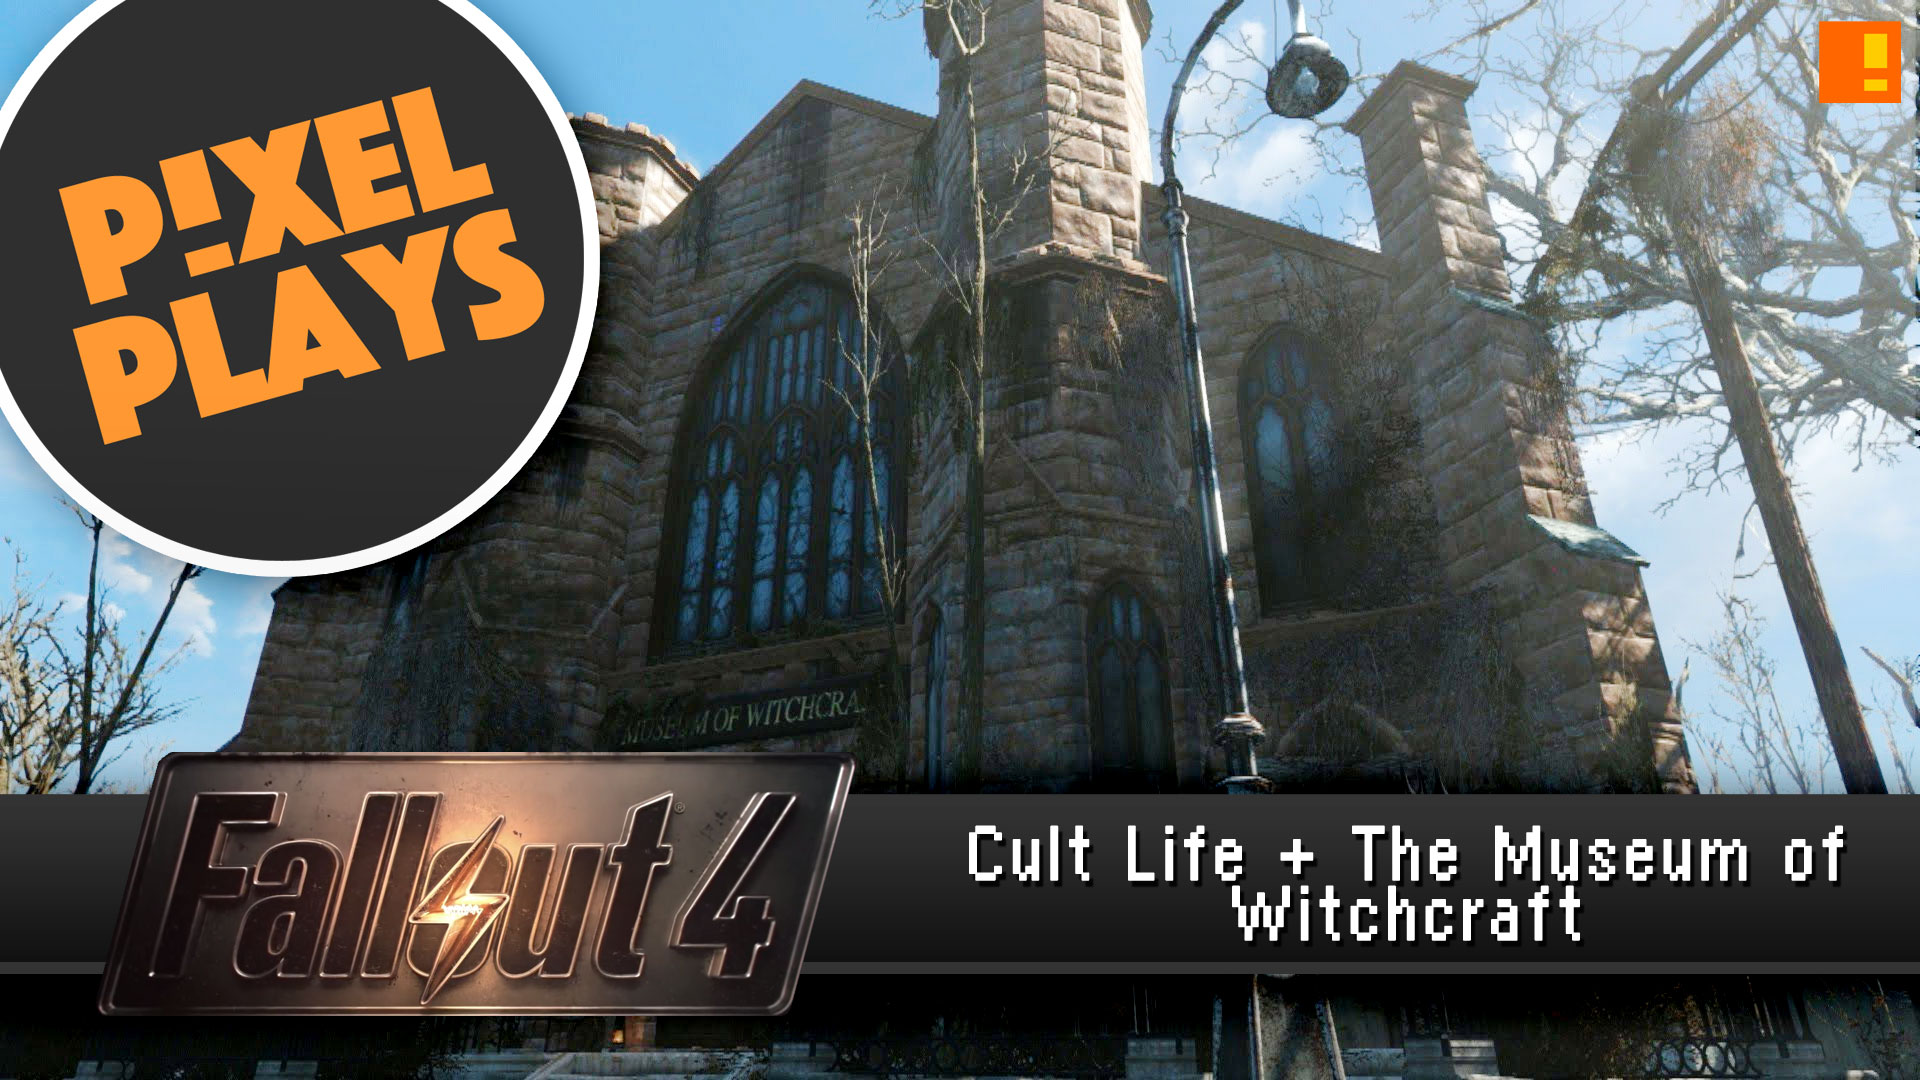 pixel plays fallout 4 museum of Witchcraft #EntertainmentOnTAP